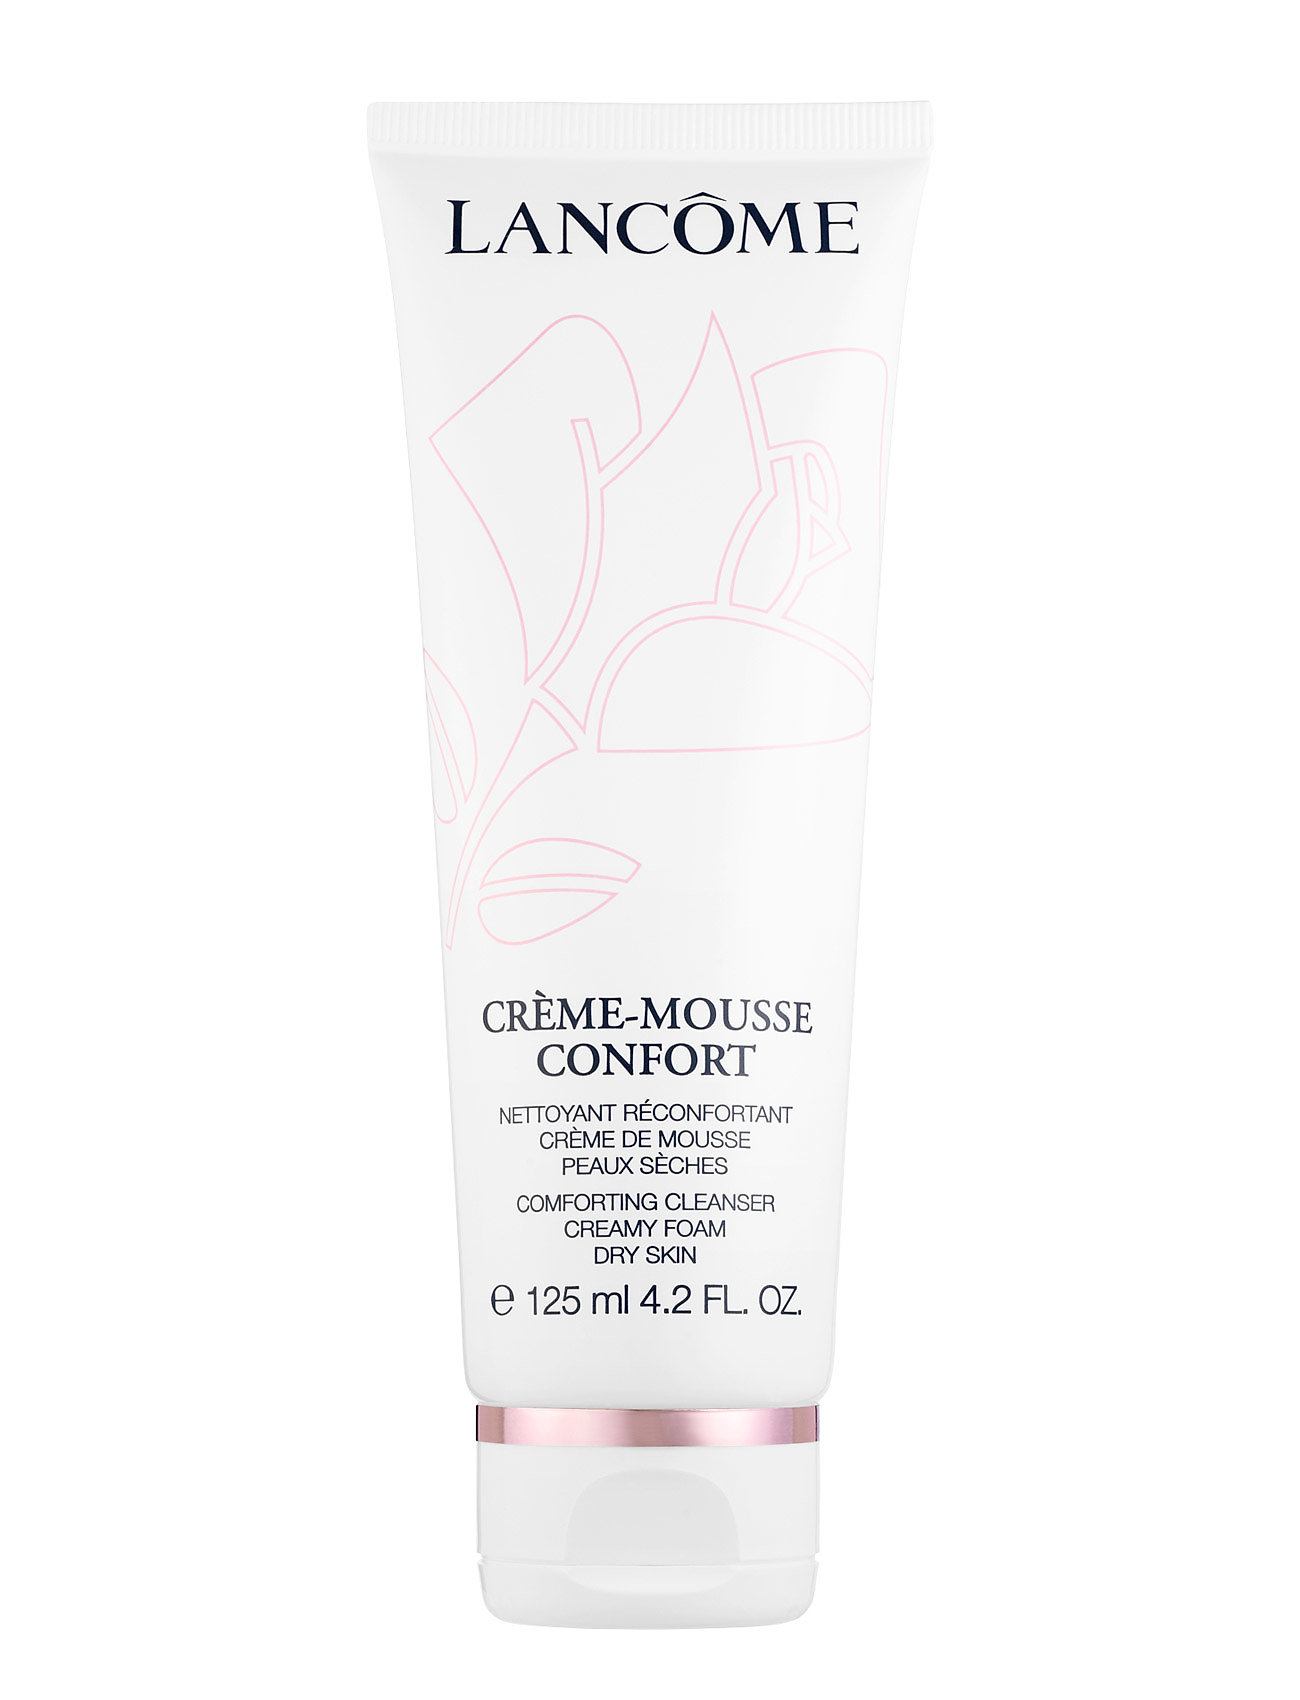 Image of CrèMe Mousse Confort Cleansing Gel 125 Ml Beauty WOMEN Skin Care Face Cleansers Cleansing Gel Nude Lancôme (3345419523)